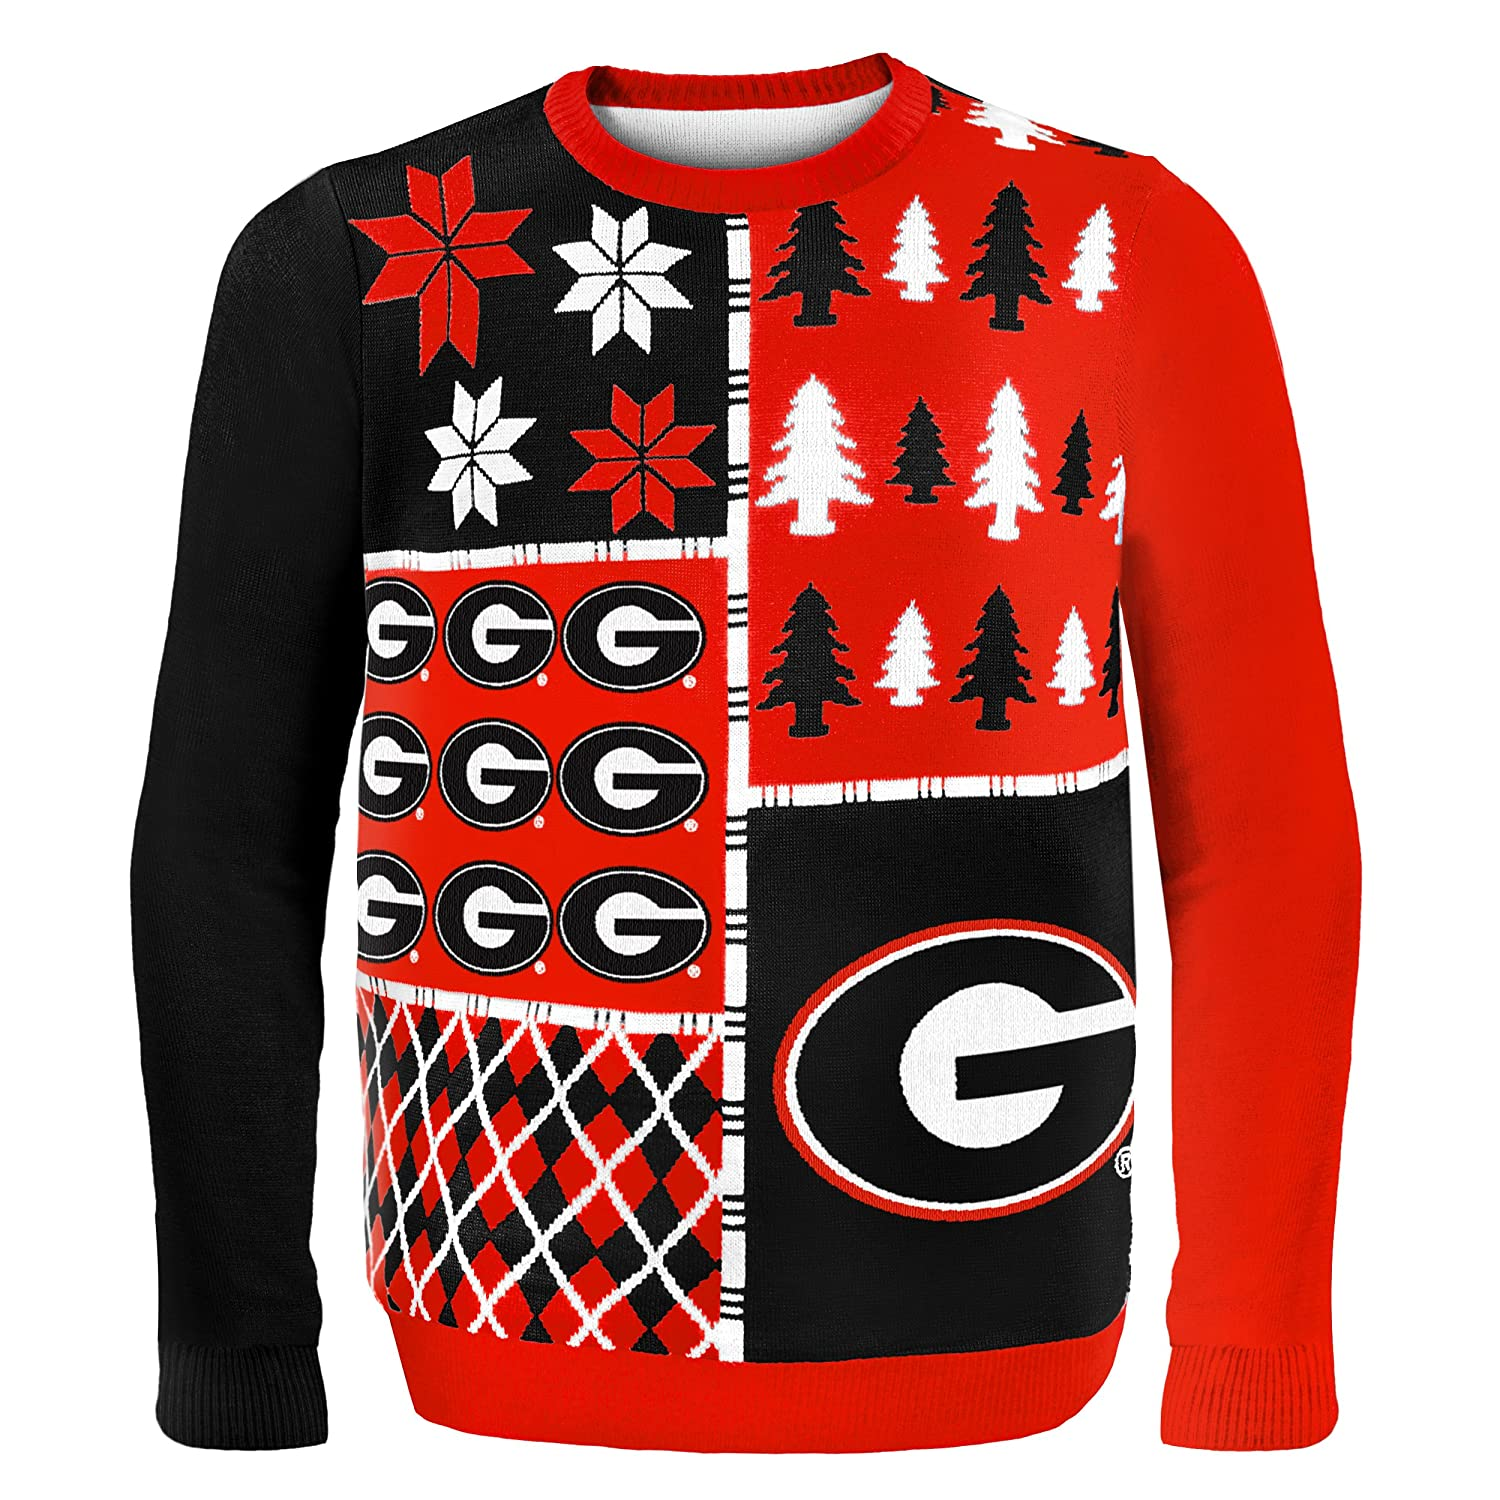 new arrival 2215e 77c64 Georgia Bulldogs Ugly Christmas Sweaters - Christmas Gifts ...